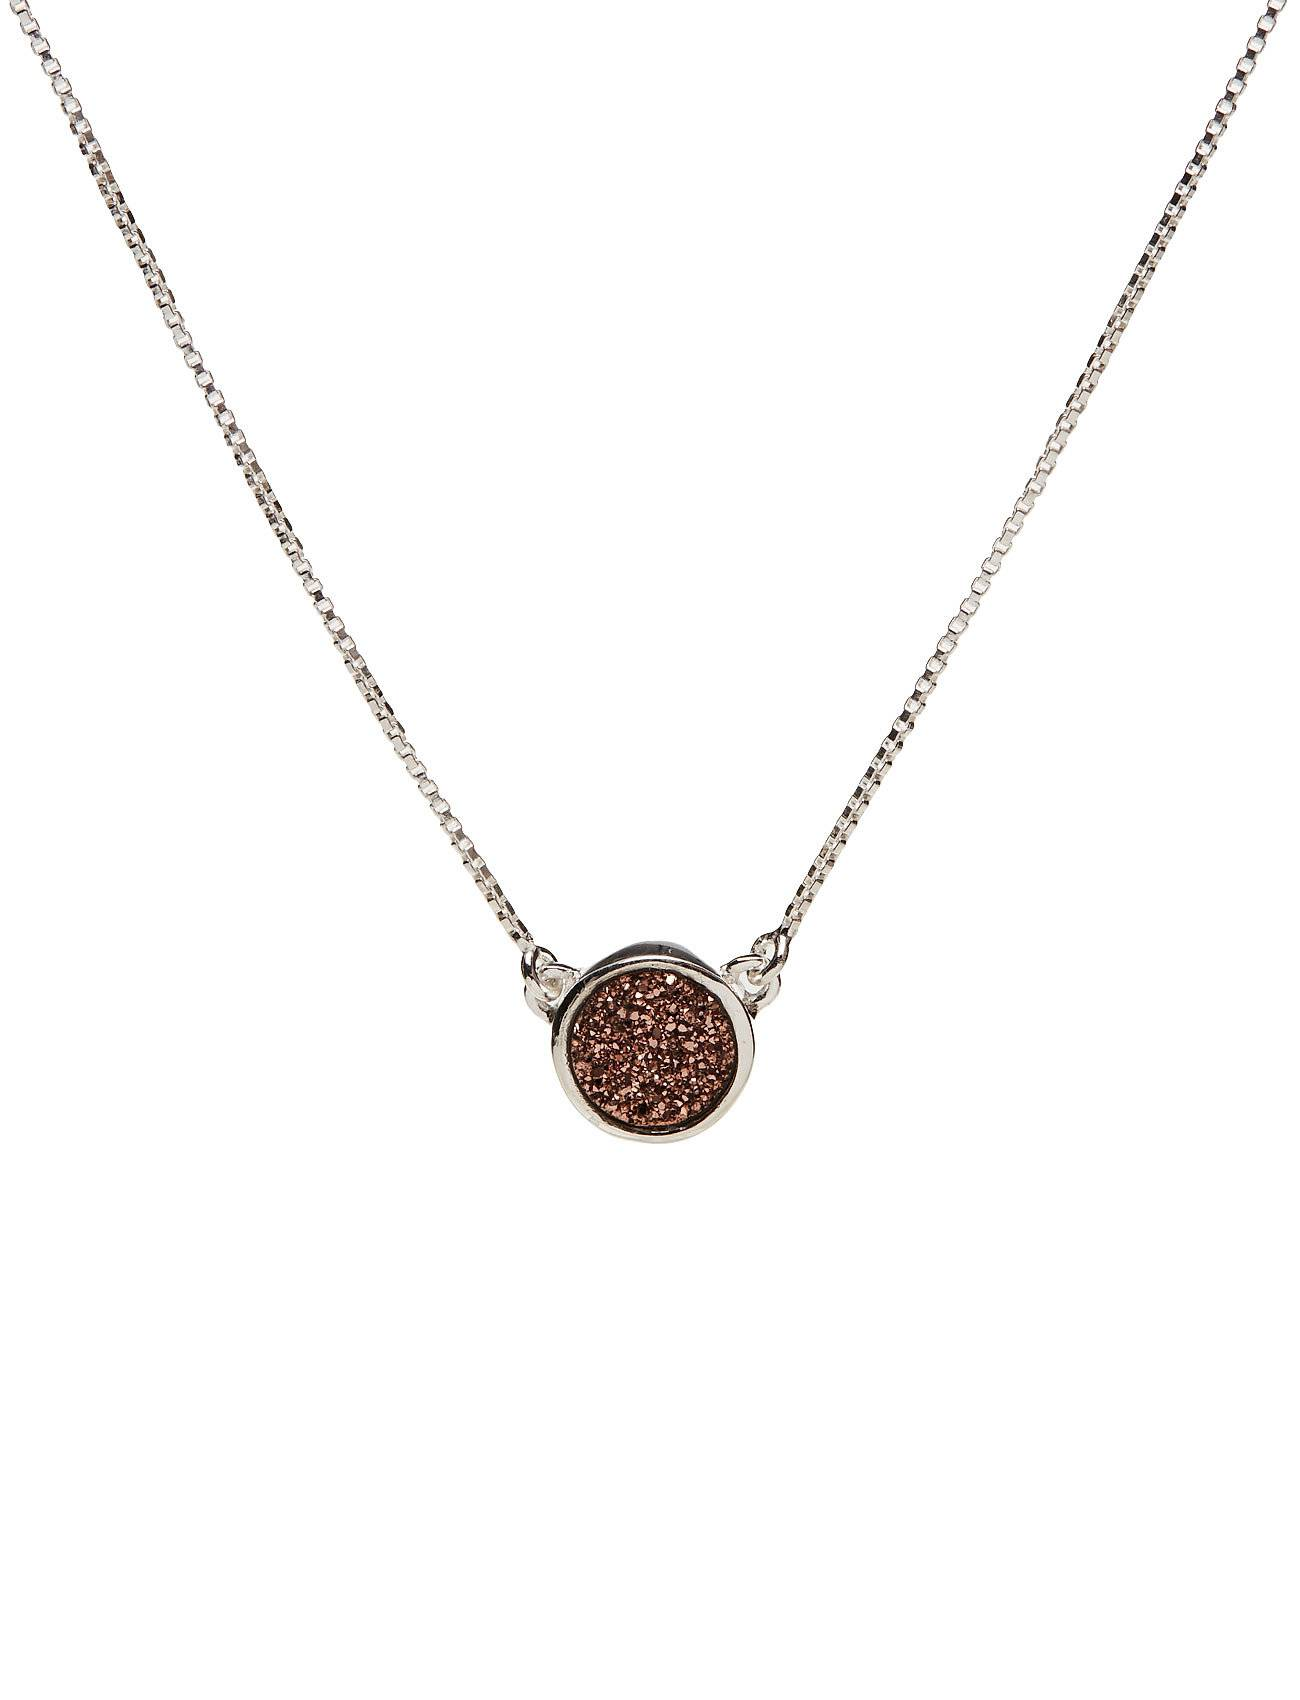 Syster P Frances Druzy Necklace Silver Rose